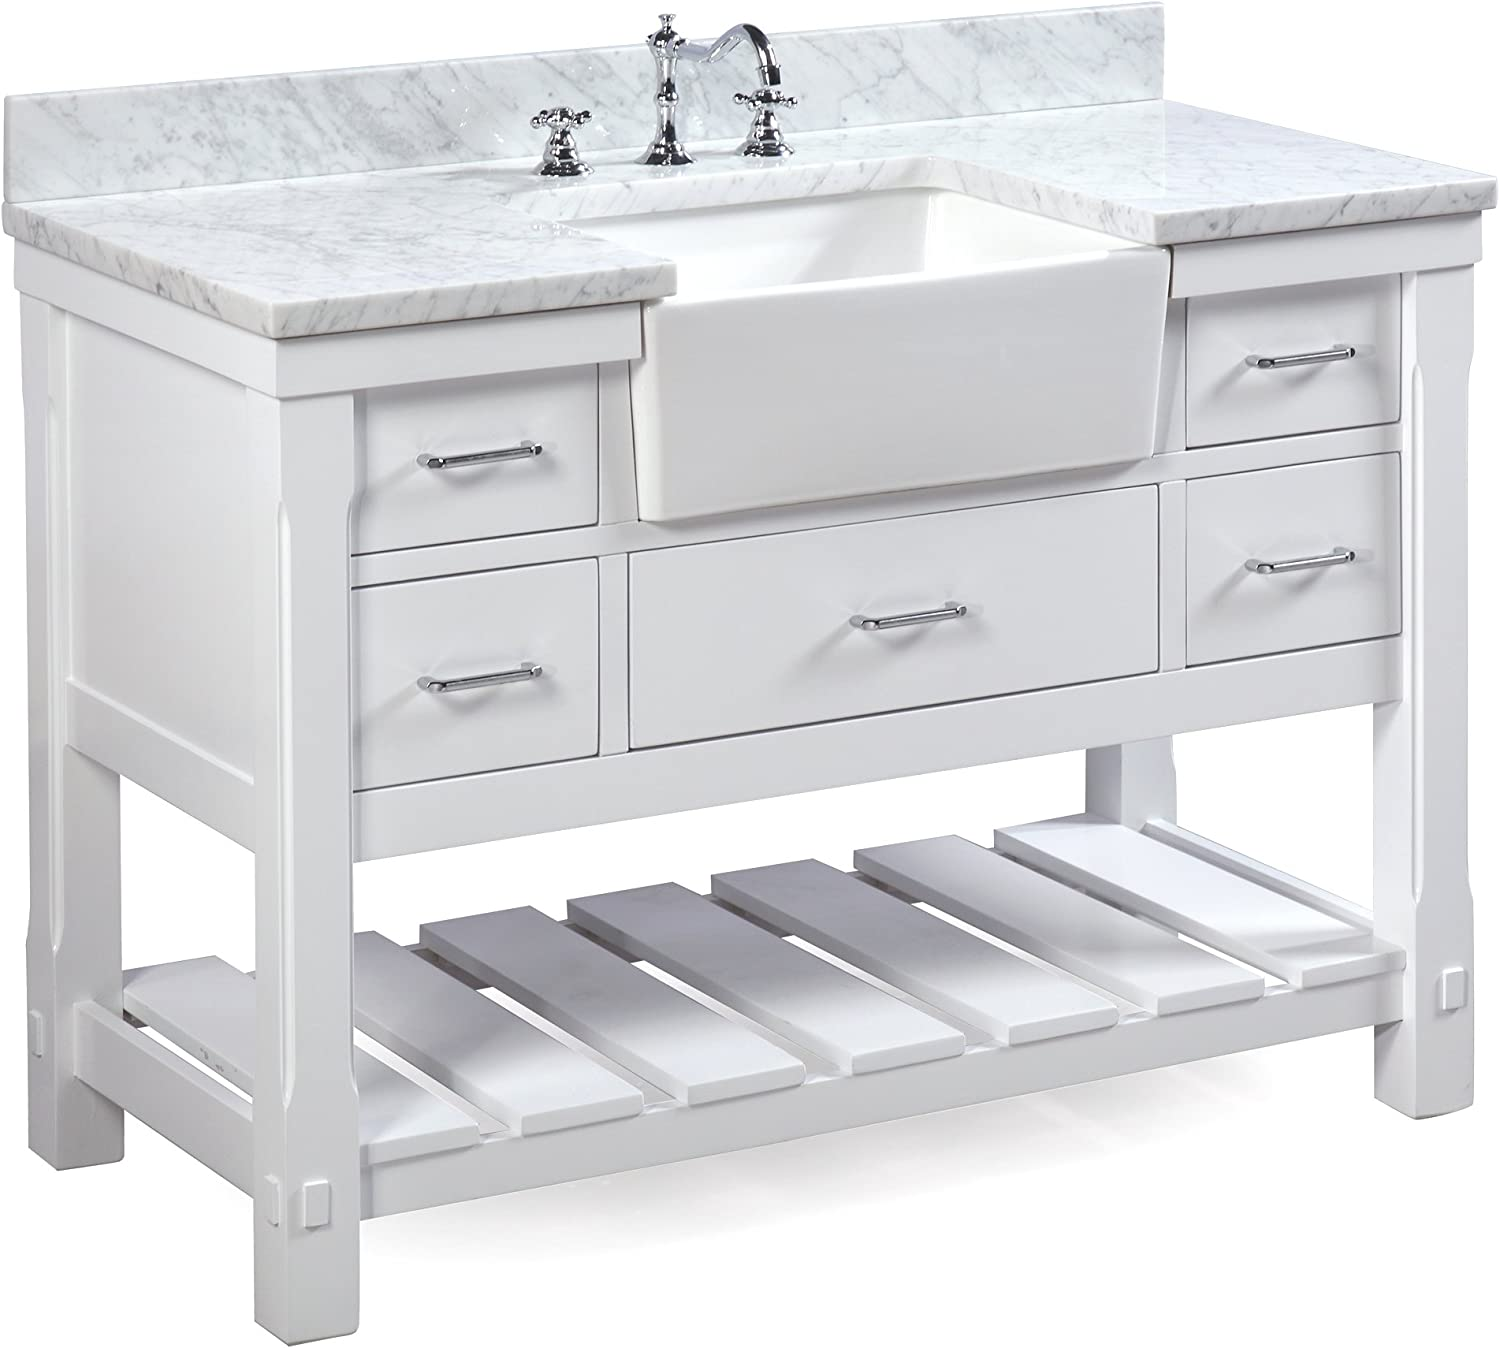 Charlotte 48-inch Bathroom Vanity Carrara White Includes a Carrara Marble Countertop, White Cabinet with Soft Close Drawers, and White Ceramic Farmhouse Apron Sink